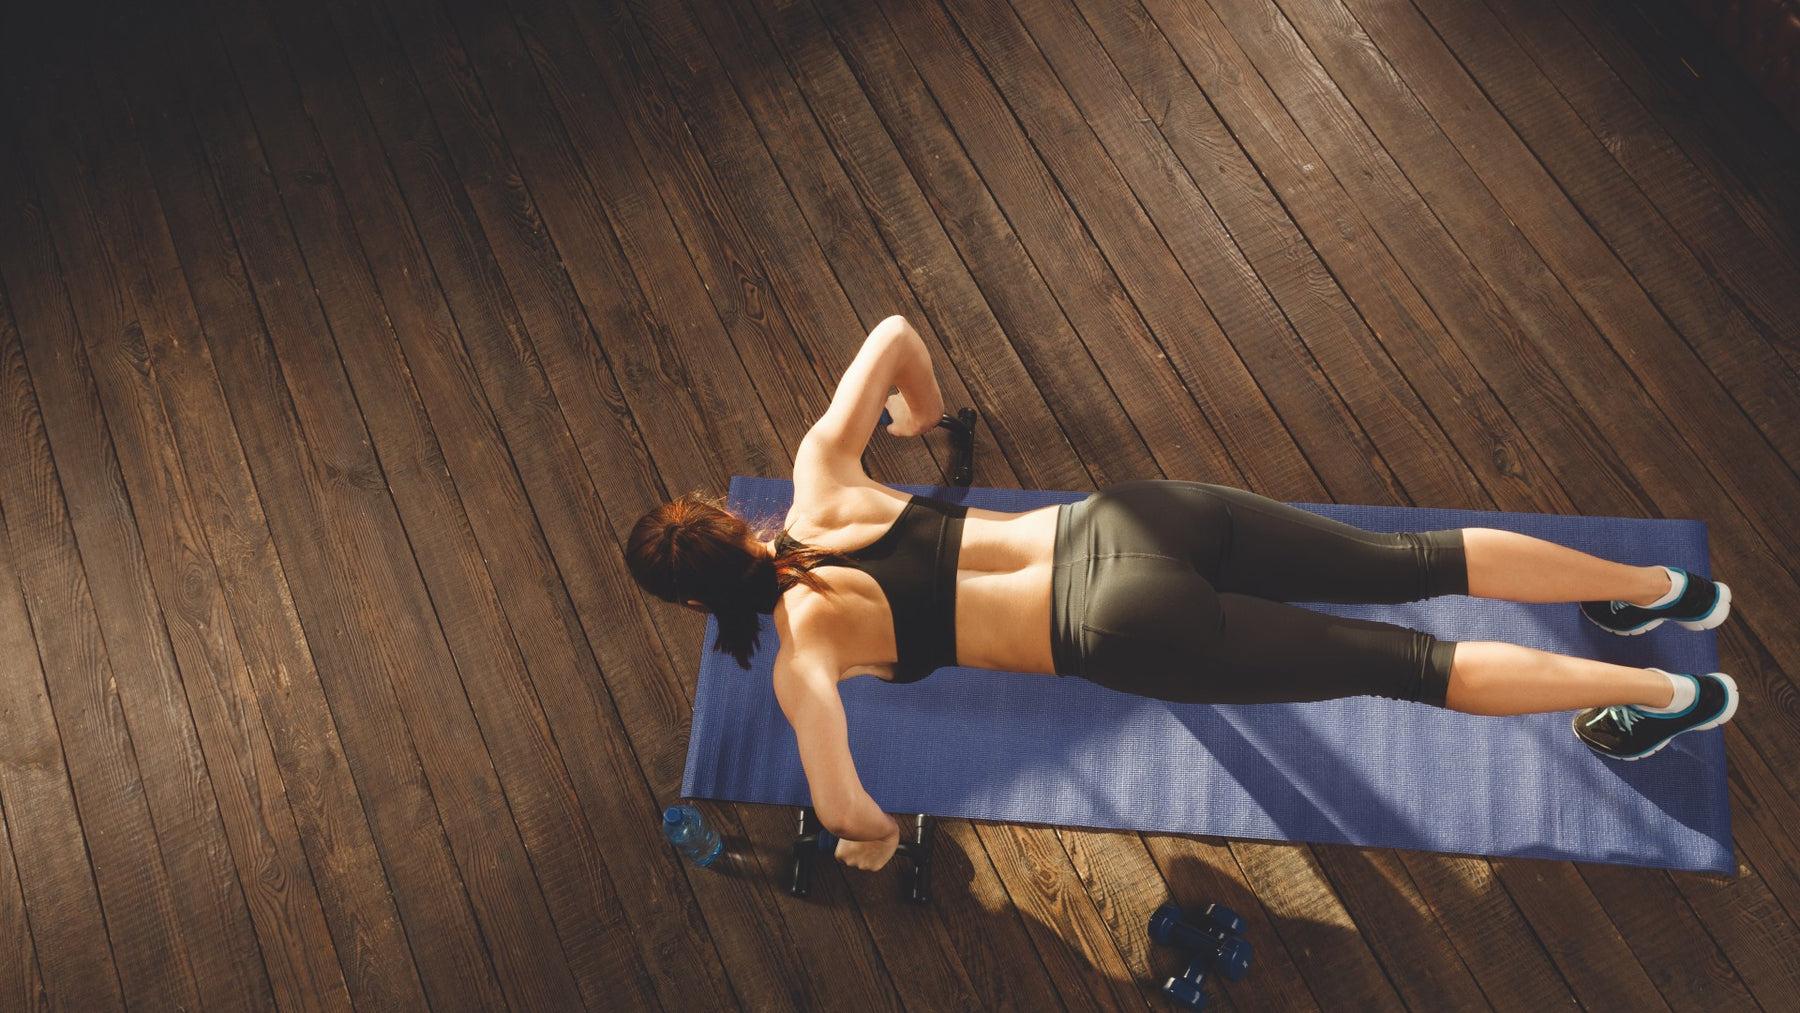 Get In Shape at Home With These 8 Awesome Exercises